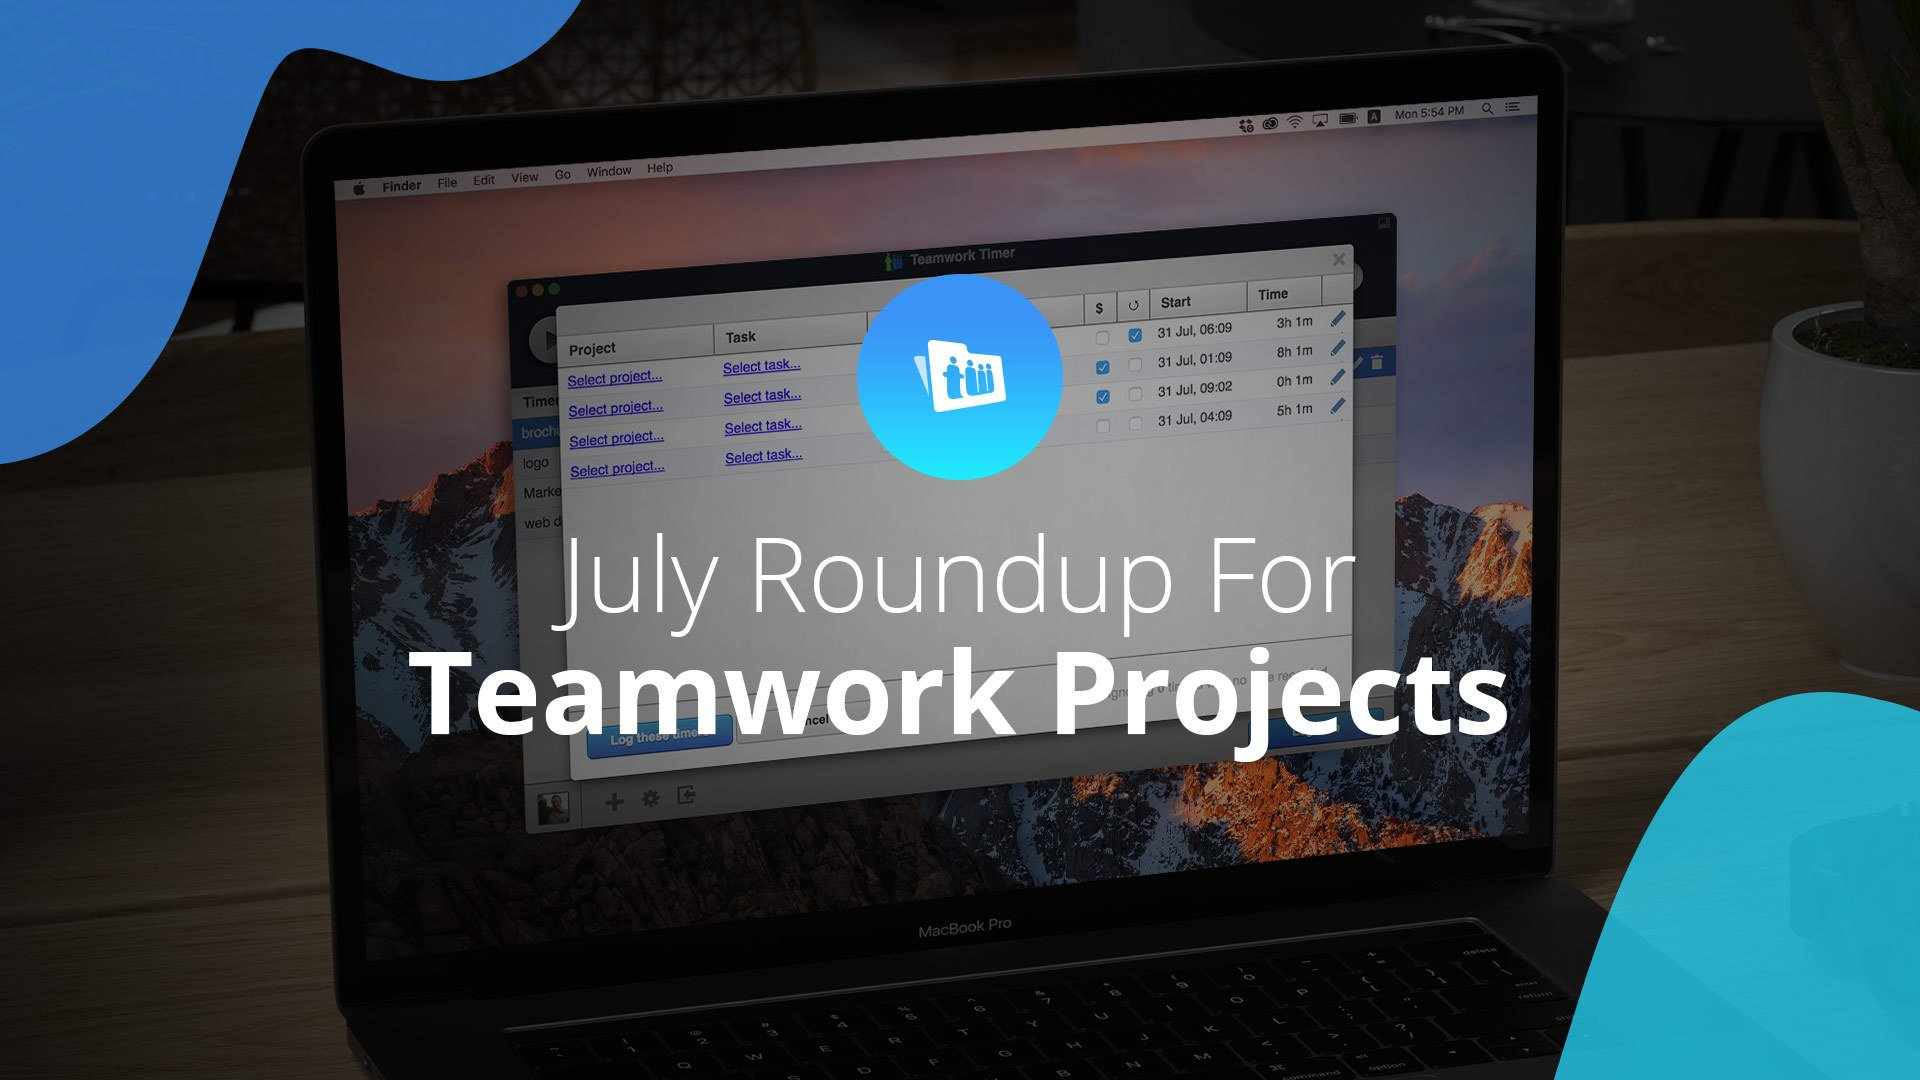 July Updates for Teamwork Projects: Improved Time Tracking & Client Onboarding